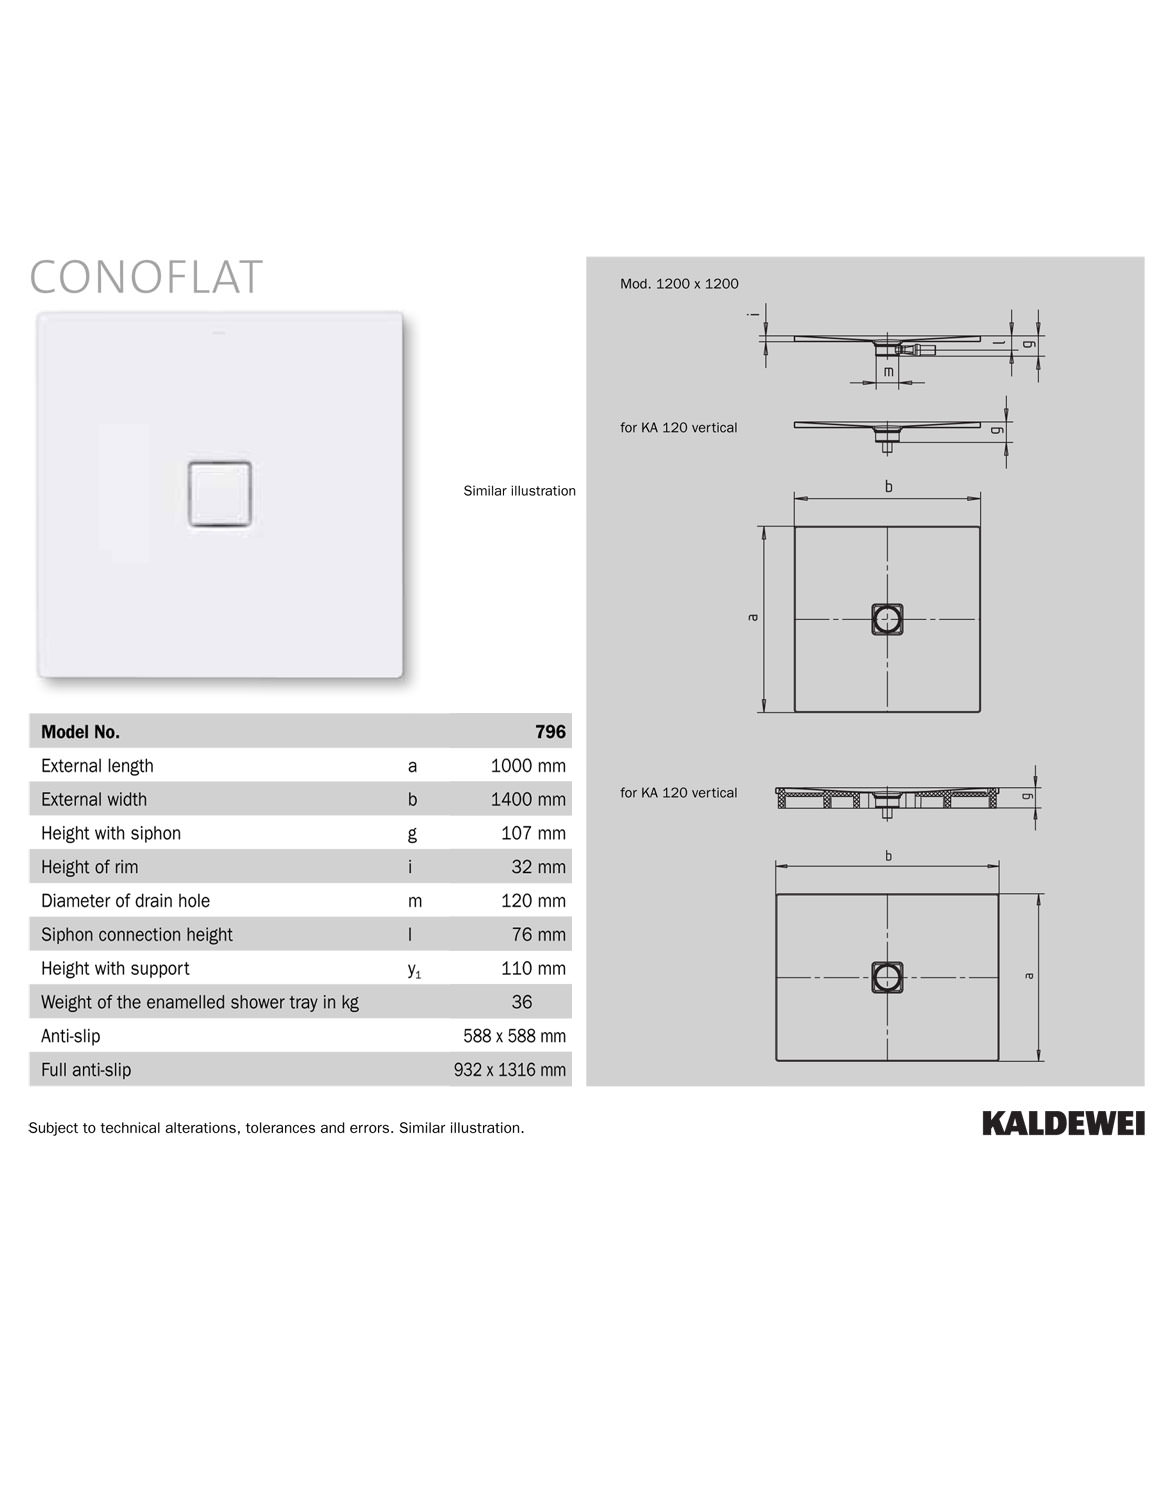 Duschtasse Conoflat Kaldewei Avantgarde Conoflat 1400 X 1000mm Steel Shower Tray